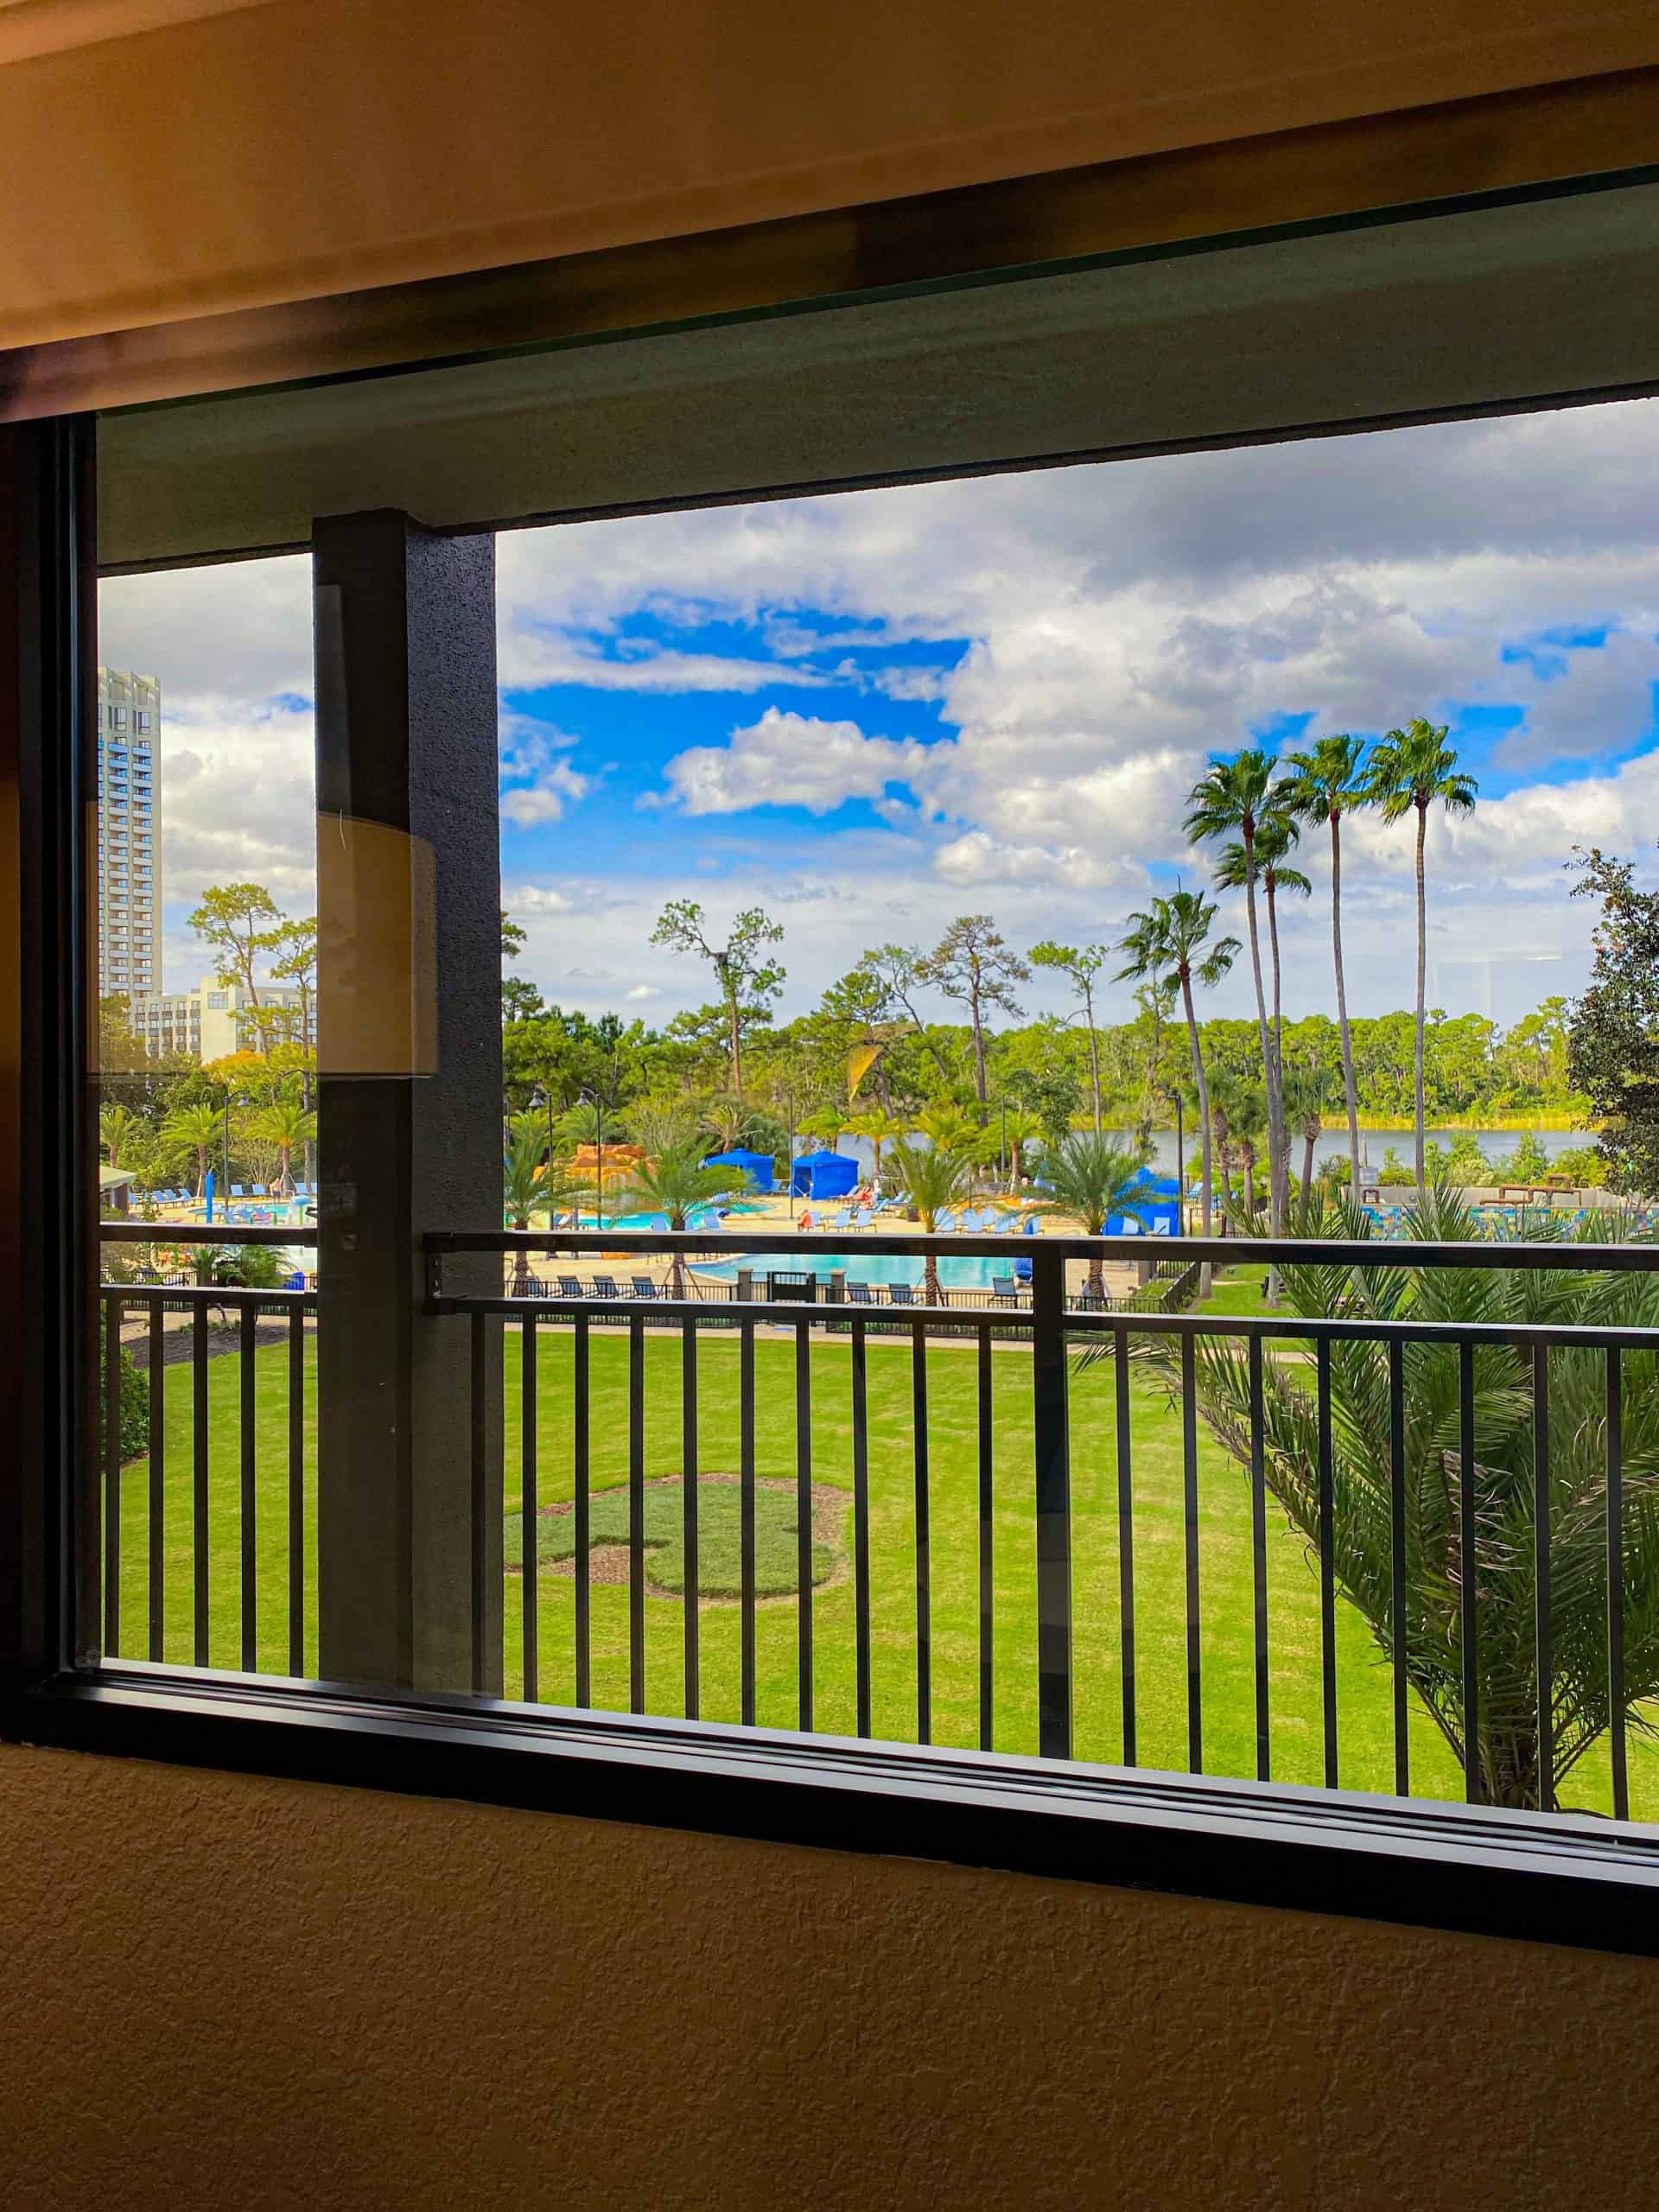 Wyndham Lake Buena Vista Garden room